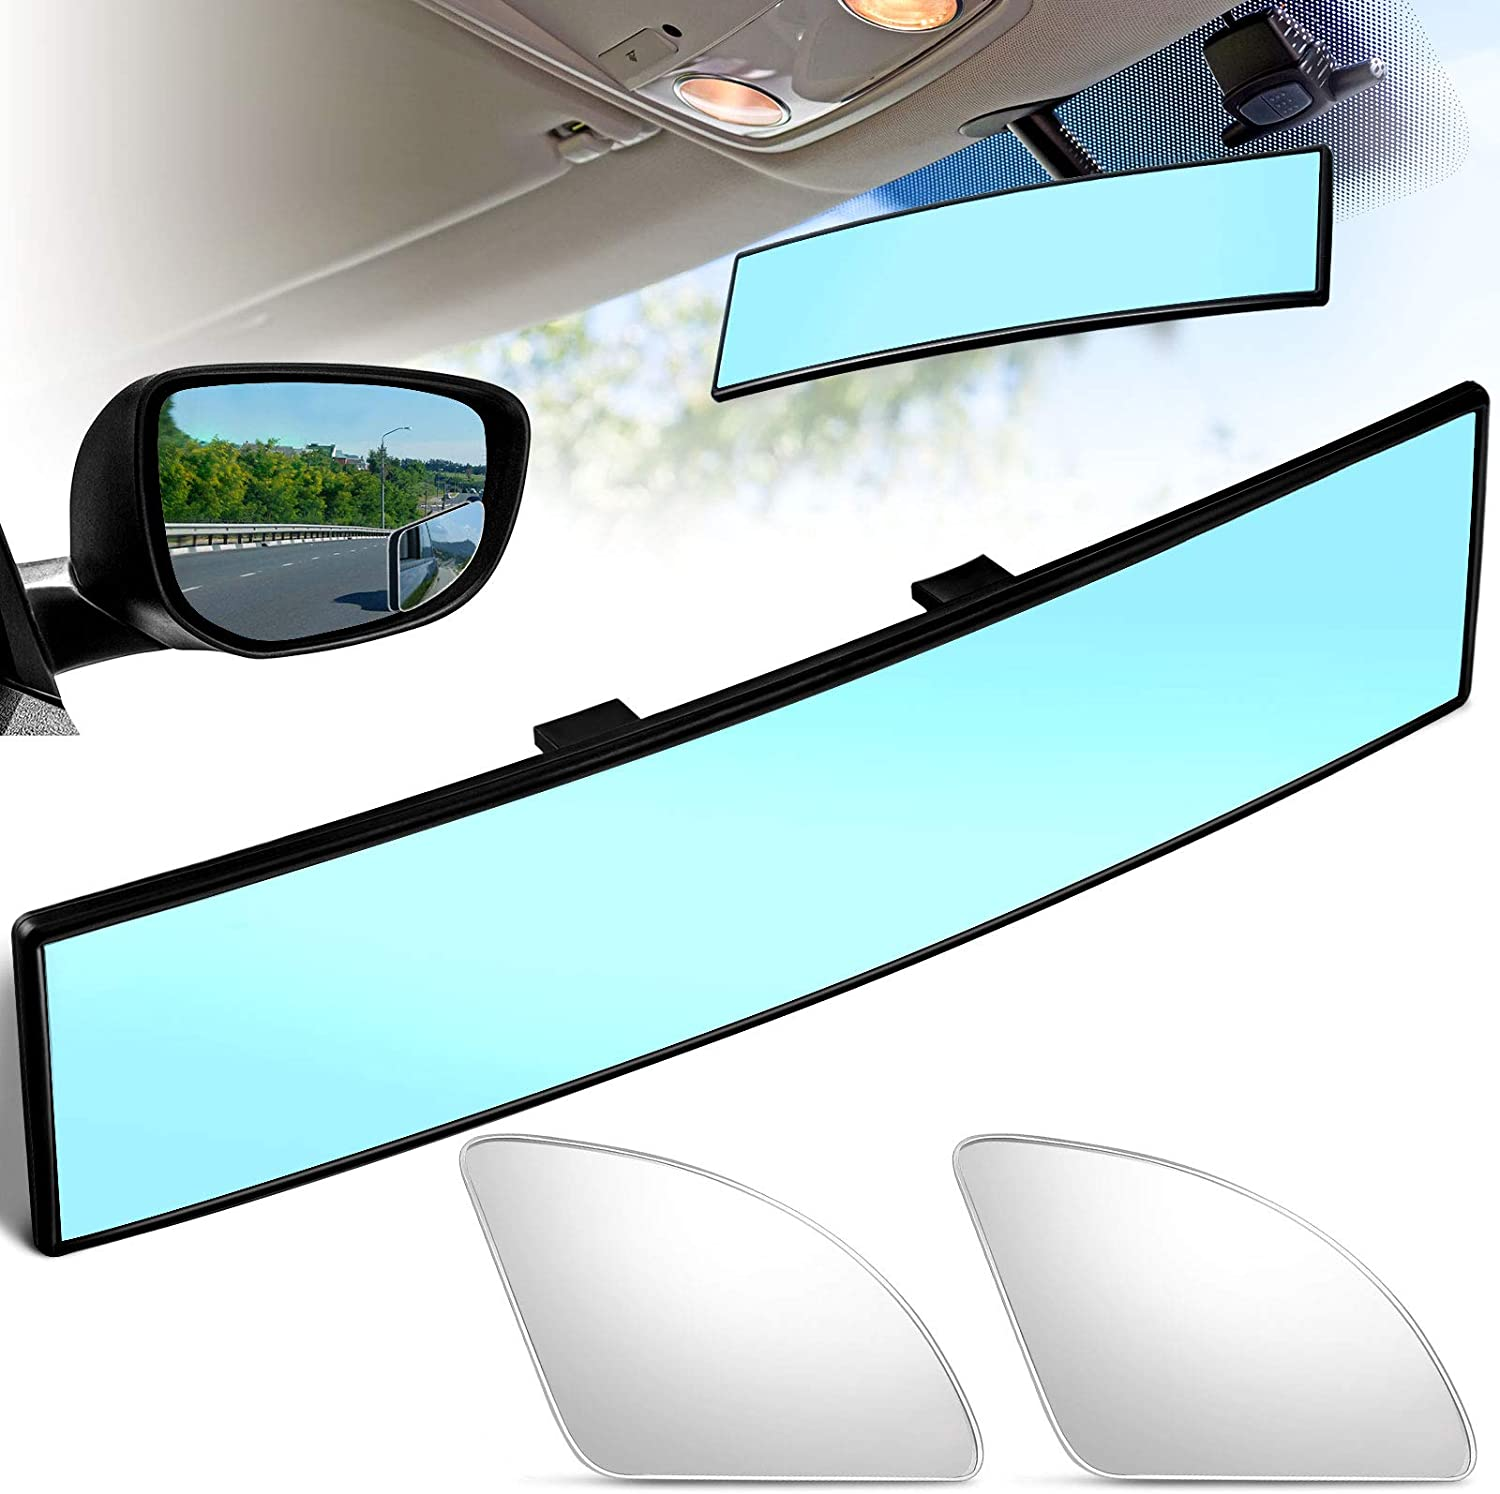 Car Interior Rear View Mirror 300 mm Convex Rearview Mirror Wide Angle Mirror and Blind Spot Mirrors Fan Shaped Car Side Mirrors for Car SUV Truck White